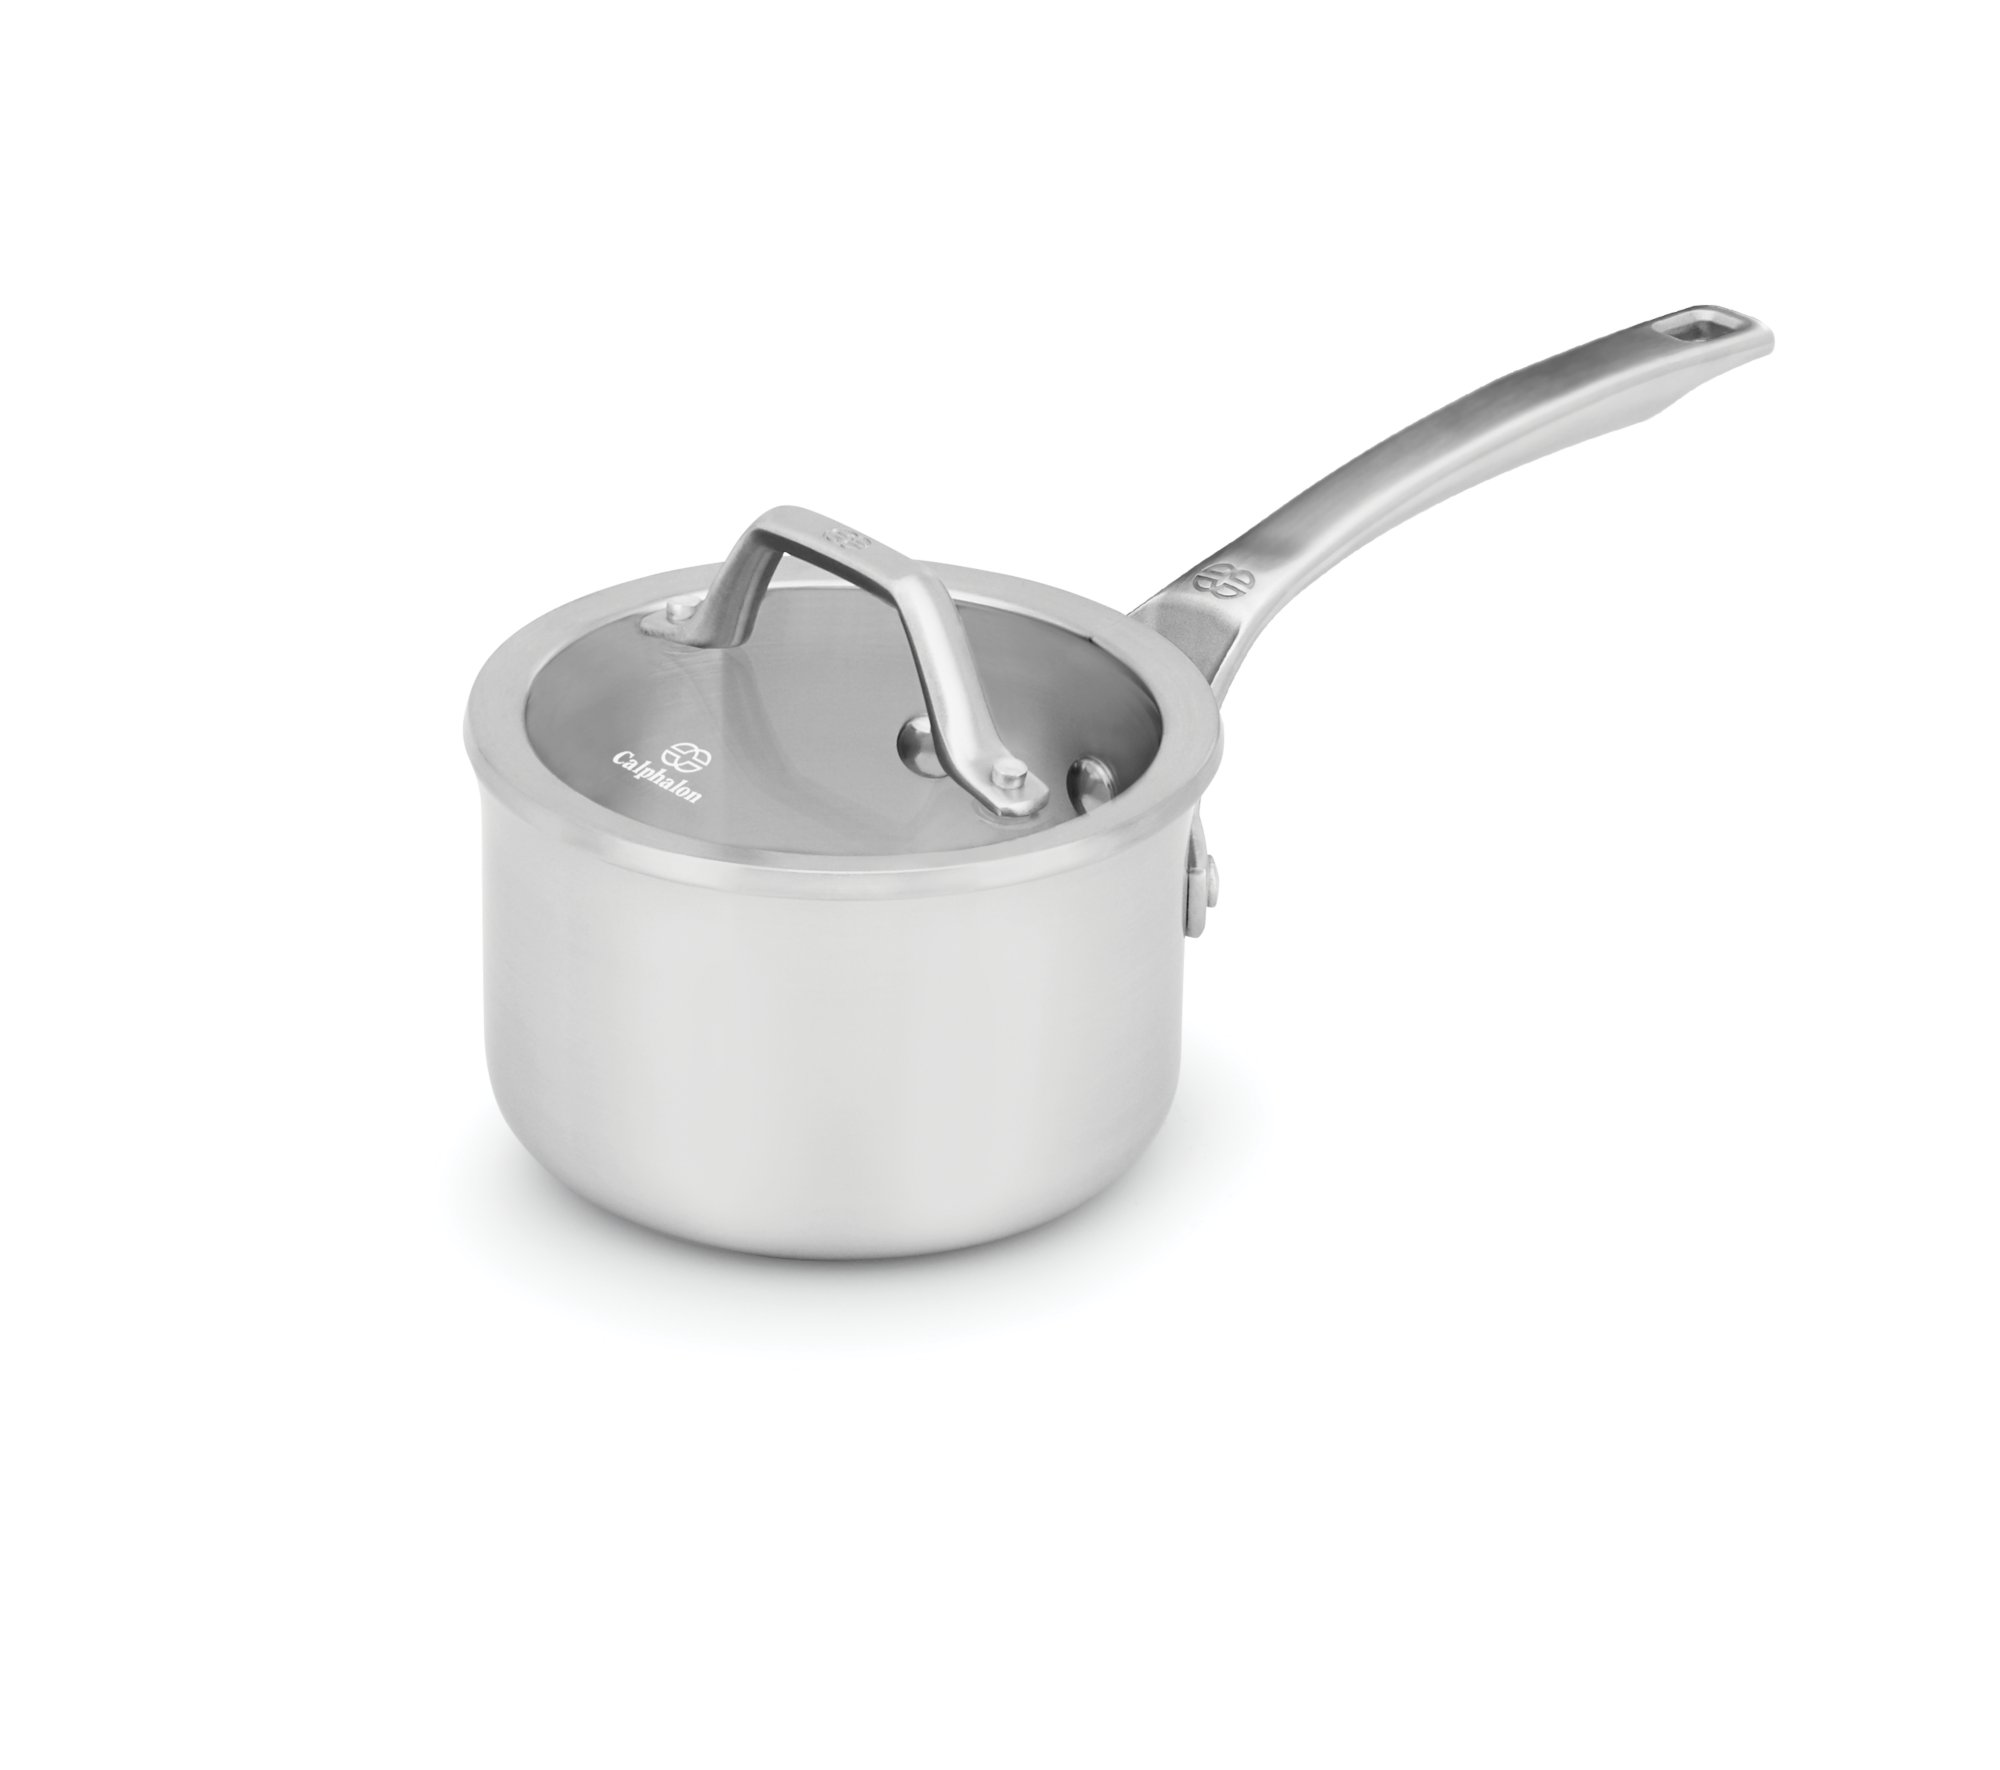 Calphalon Signature™ Stainless Steel 1-qt. Sauce Pan with Cover